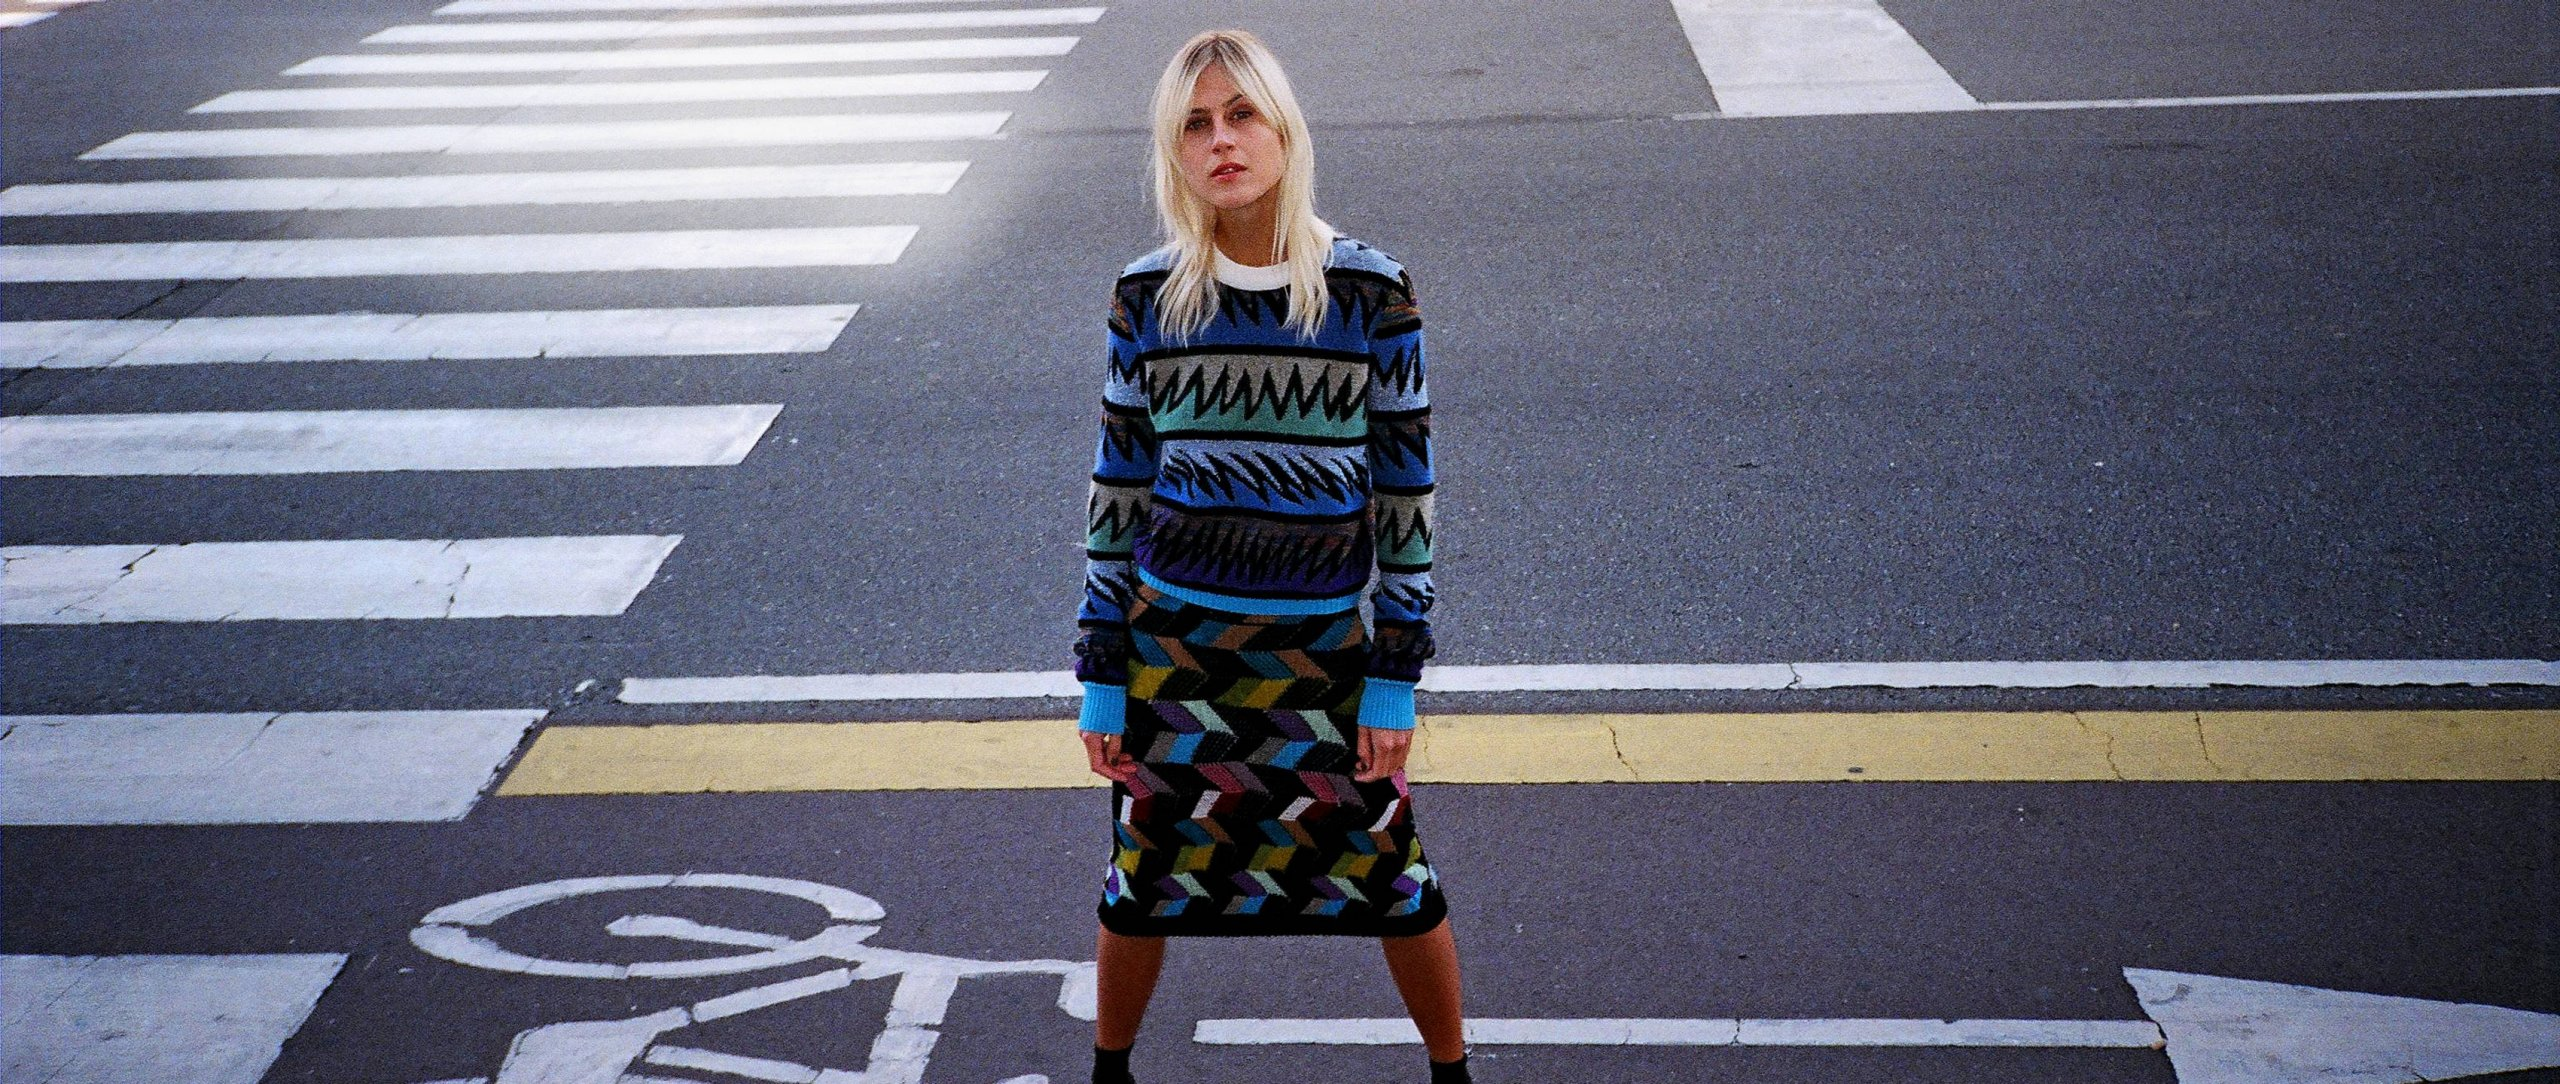 Mercedes-Benz Fashion 2017 Round-Up: Woman standing on street.